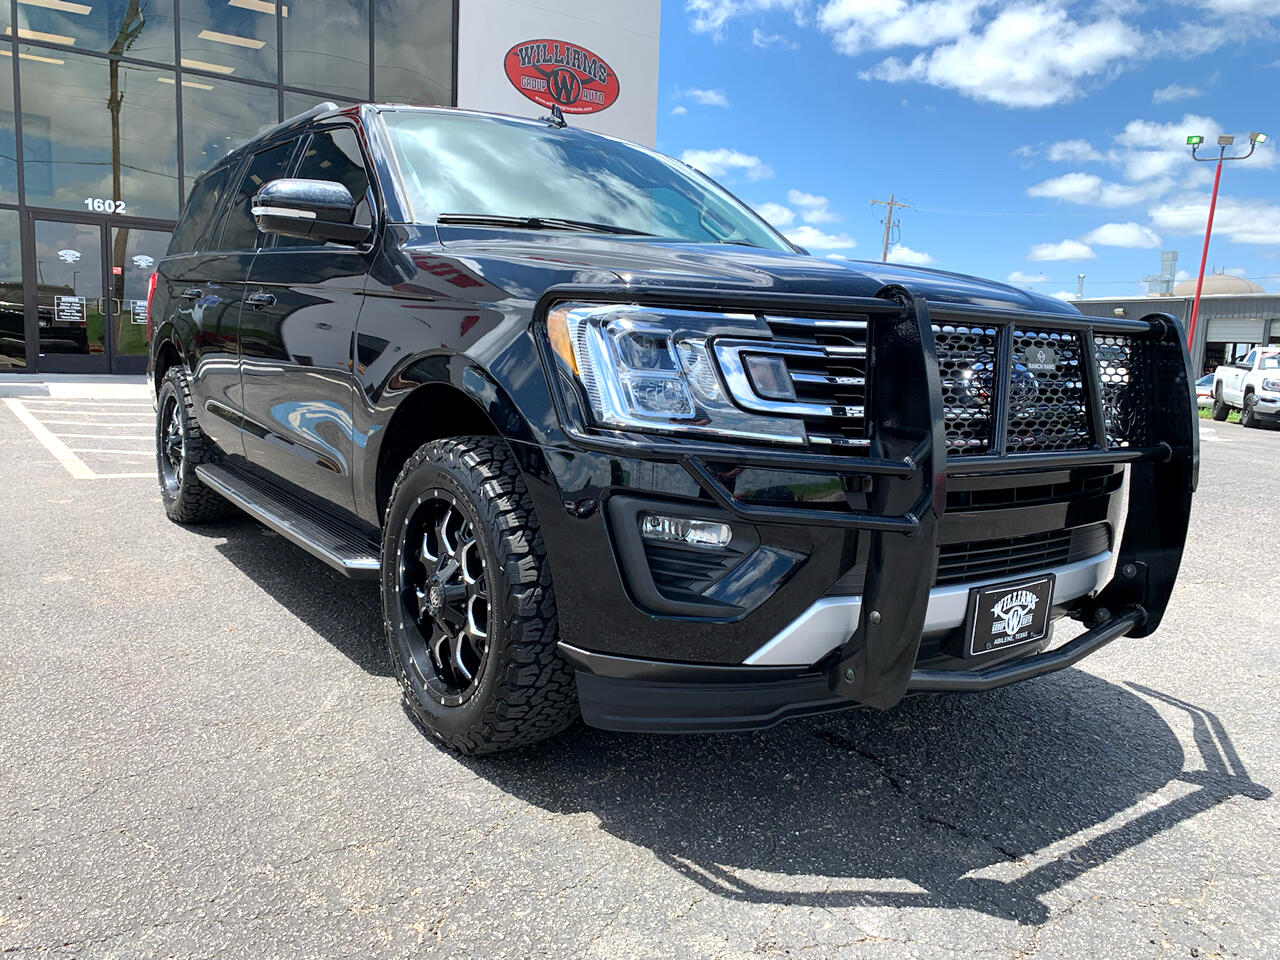 Ford Expedition XLT 4x4 2019